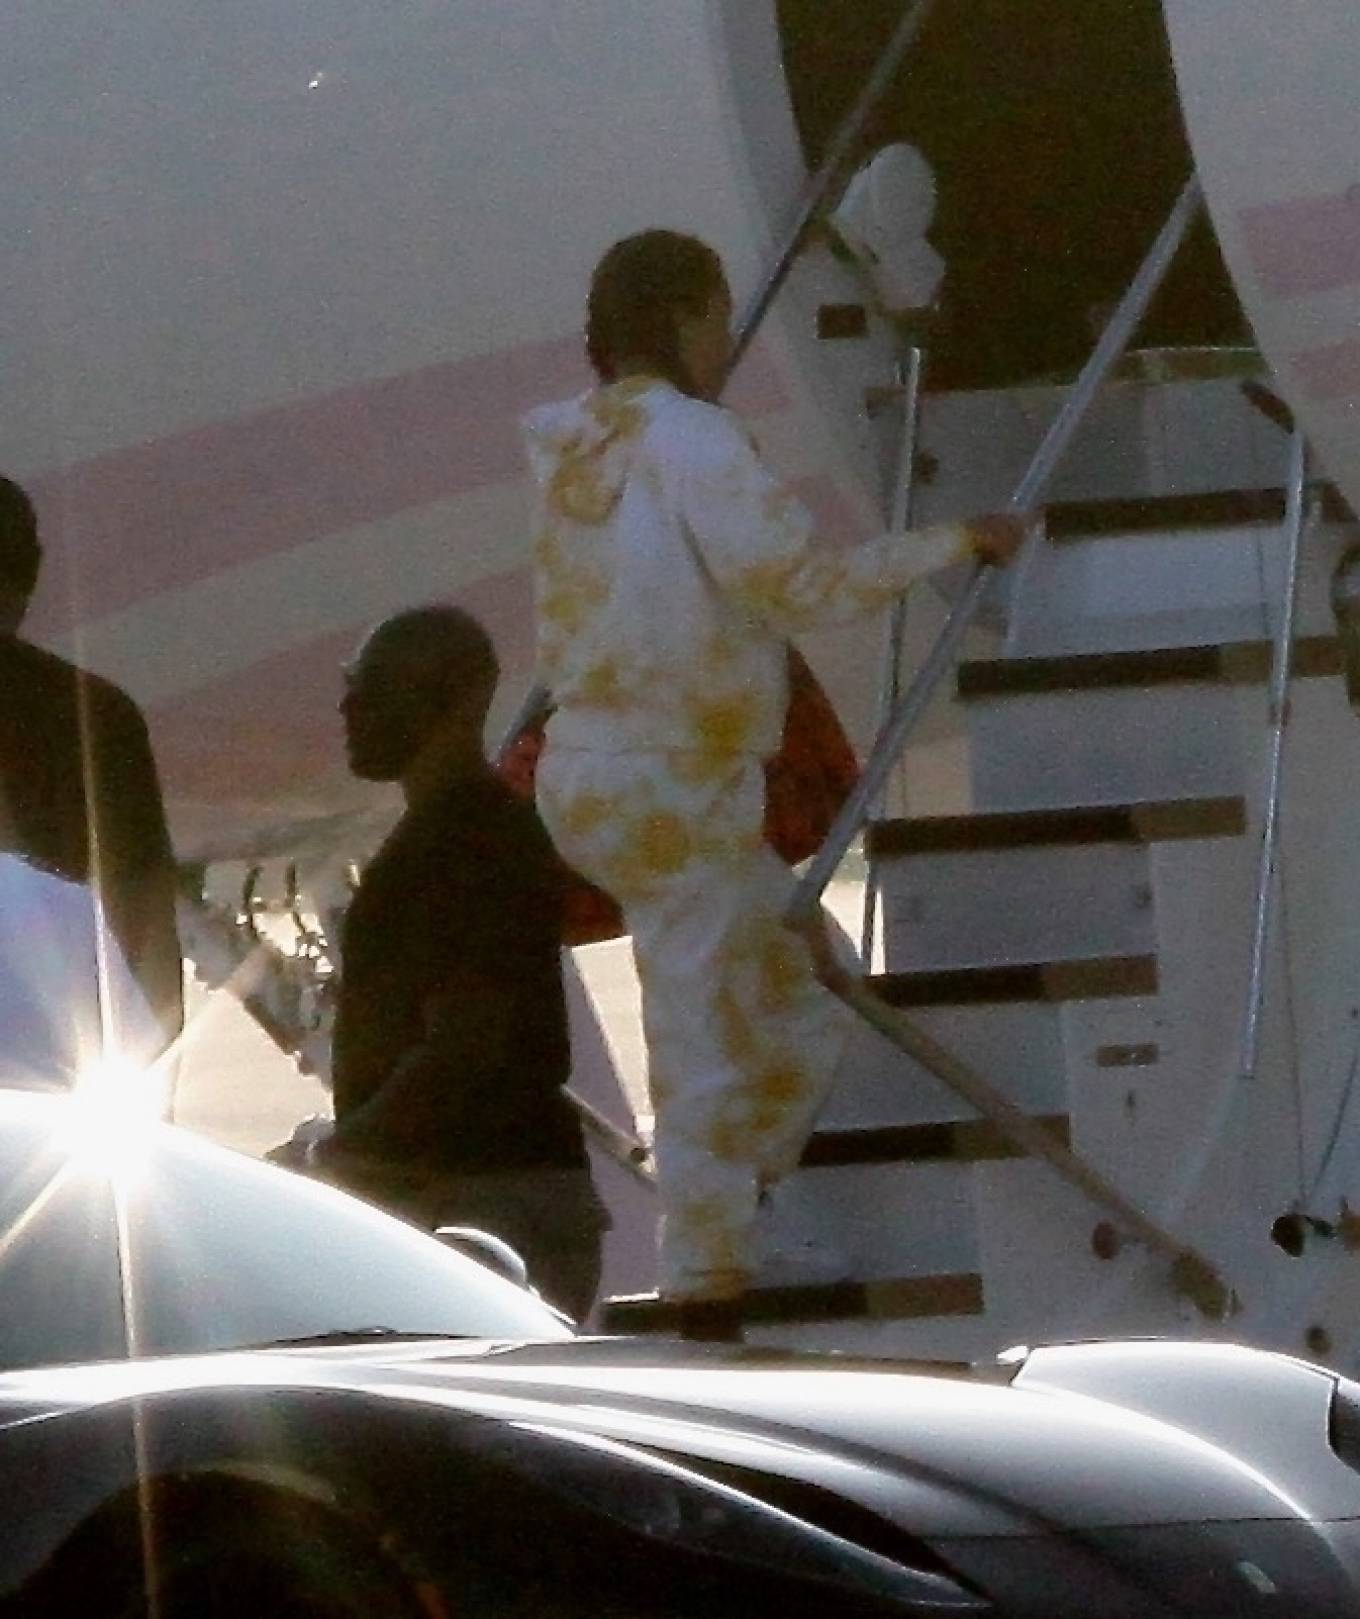 Khloe Kardashian and Kourtney Kardashian - Pictured boarding Kylie Jenner's private jet in Van Nuys